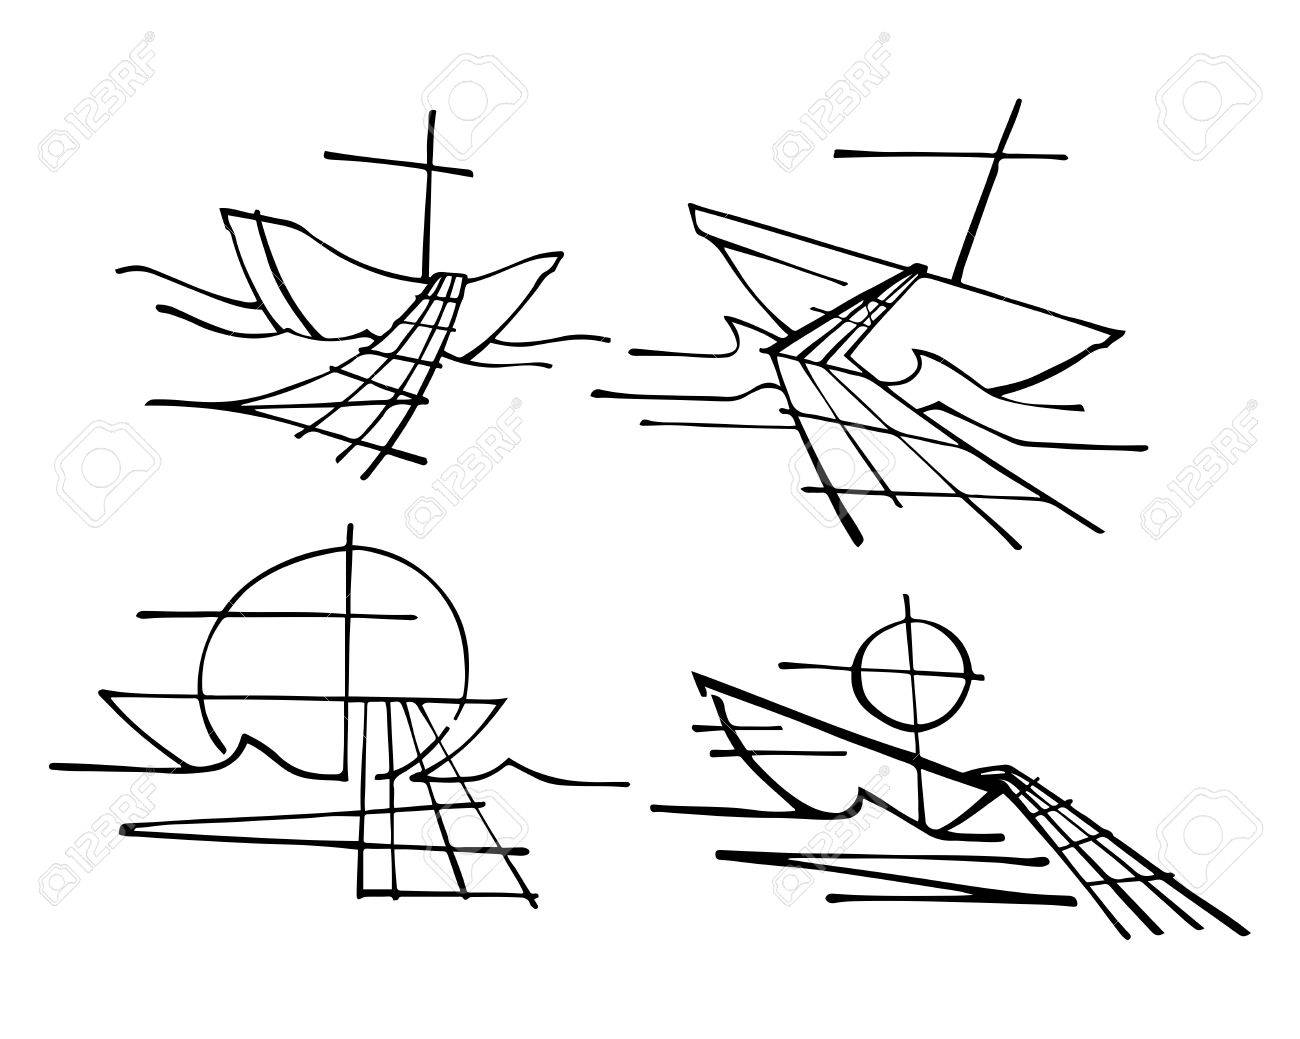 Hand Drawn Vector Illustration Or Drawing Of The Religious Symbol